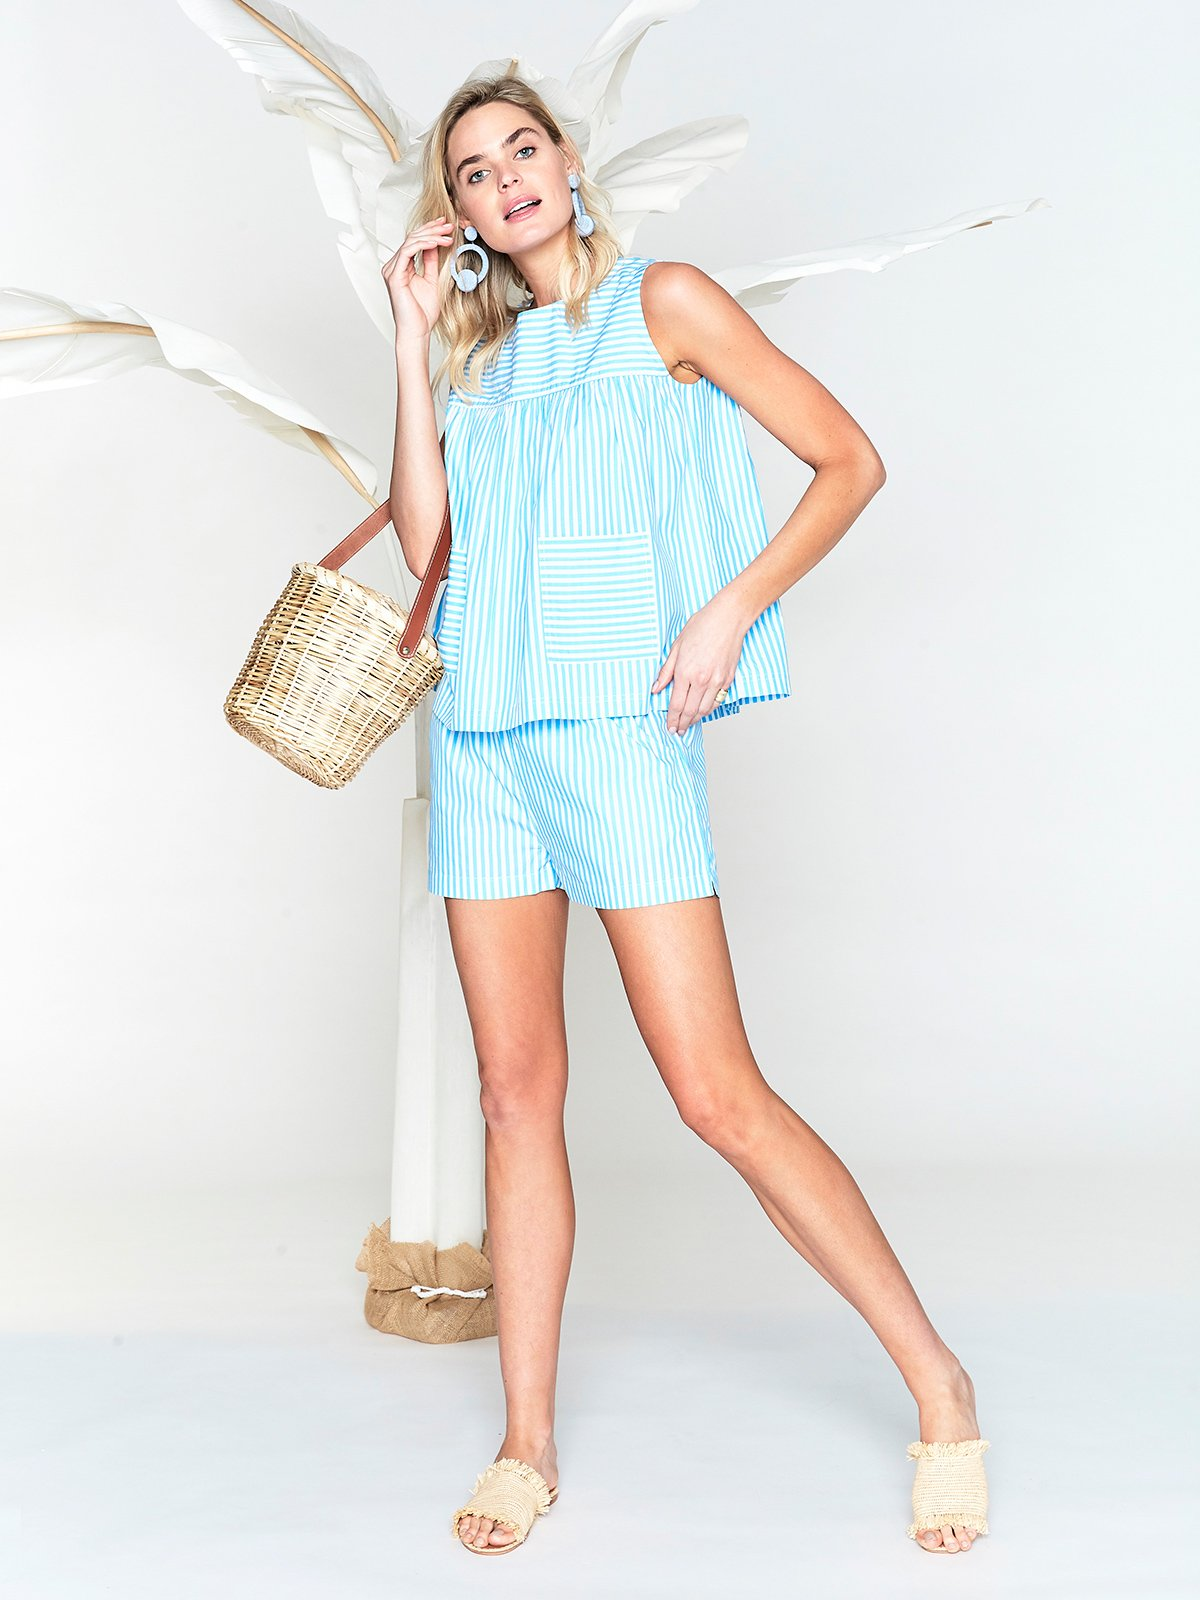 Blue and White Stripe Camisole and Cotton Shorts by Lake Pajamas